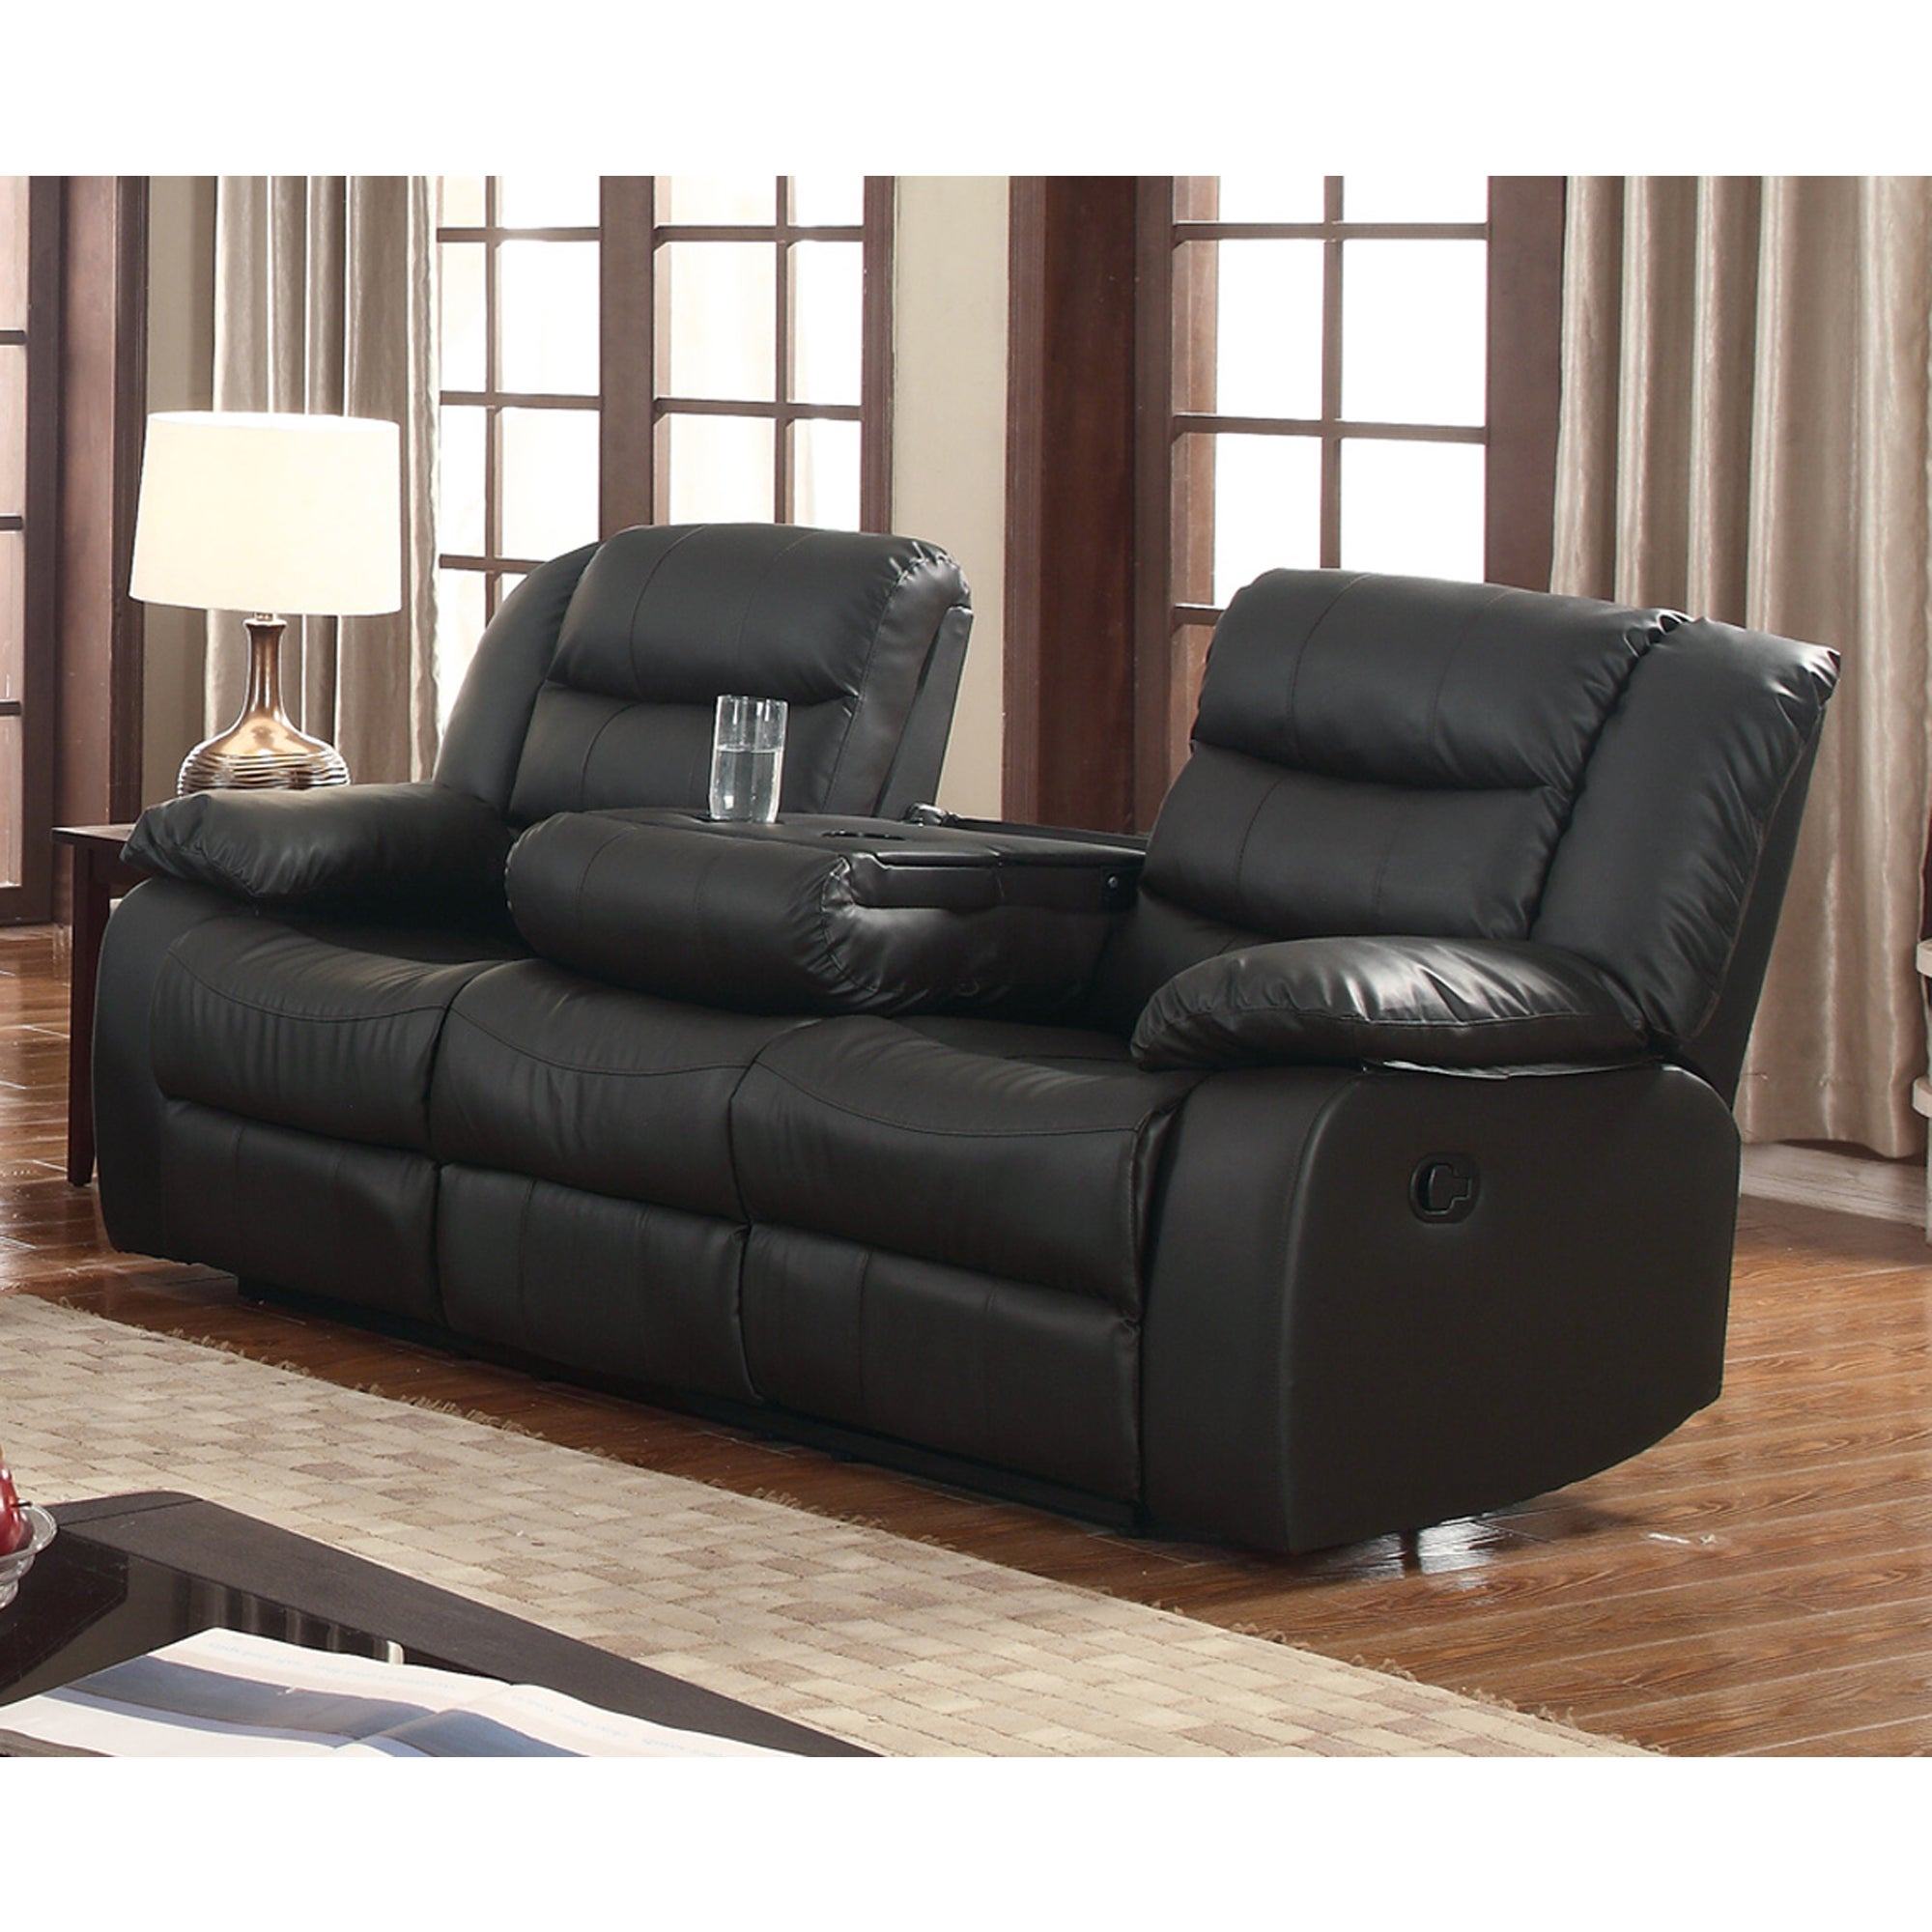 Gloria Faux Leather Living Room Reclining Sofa With Drop Down Table